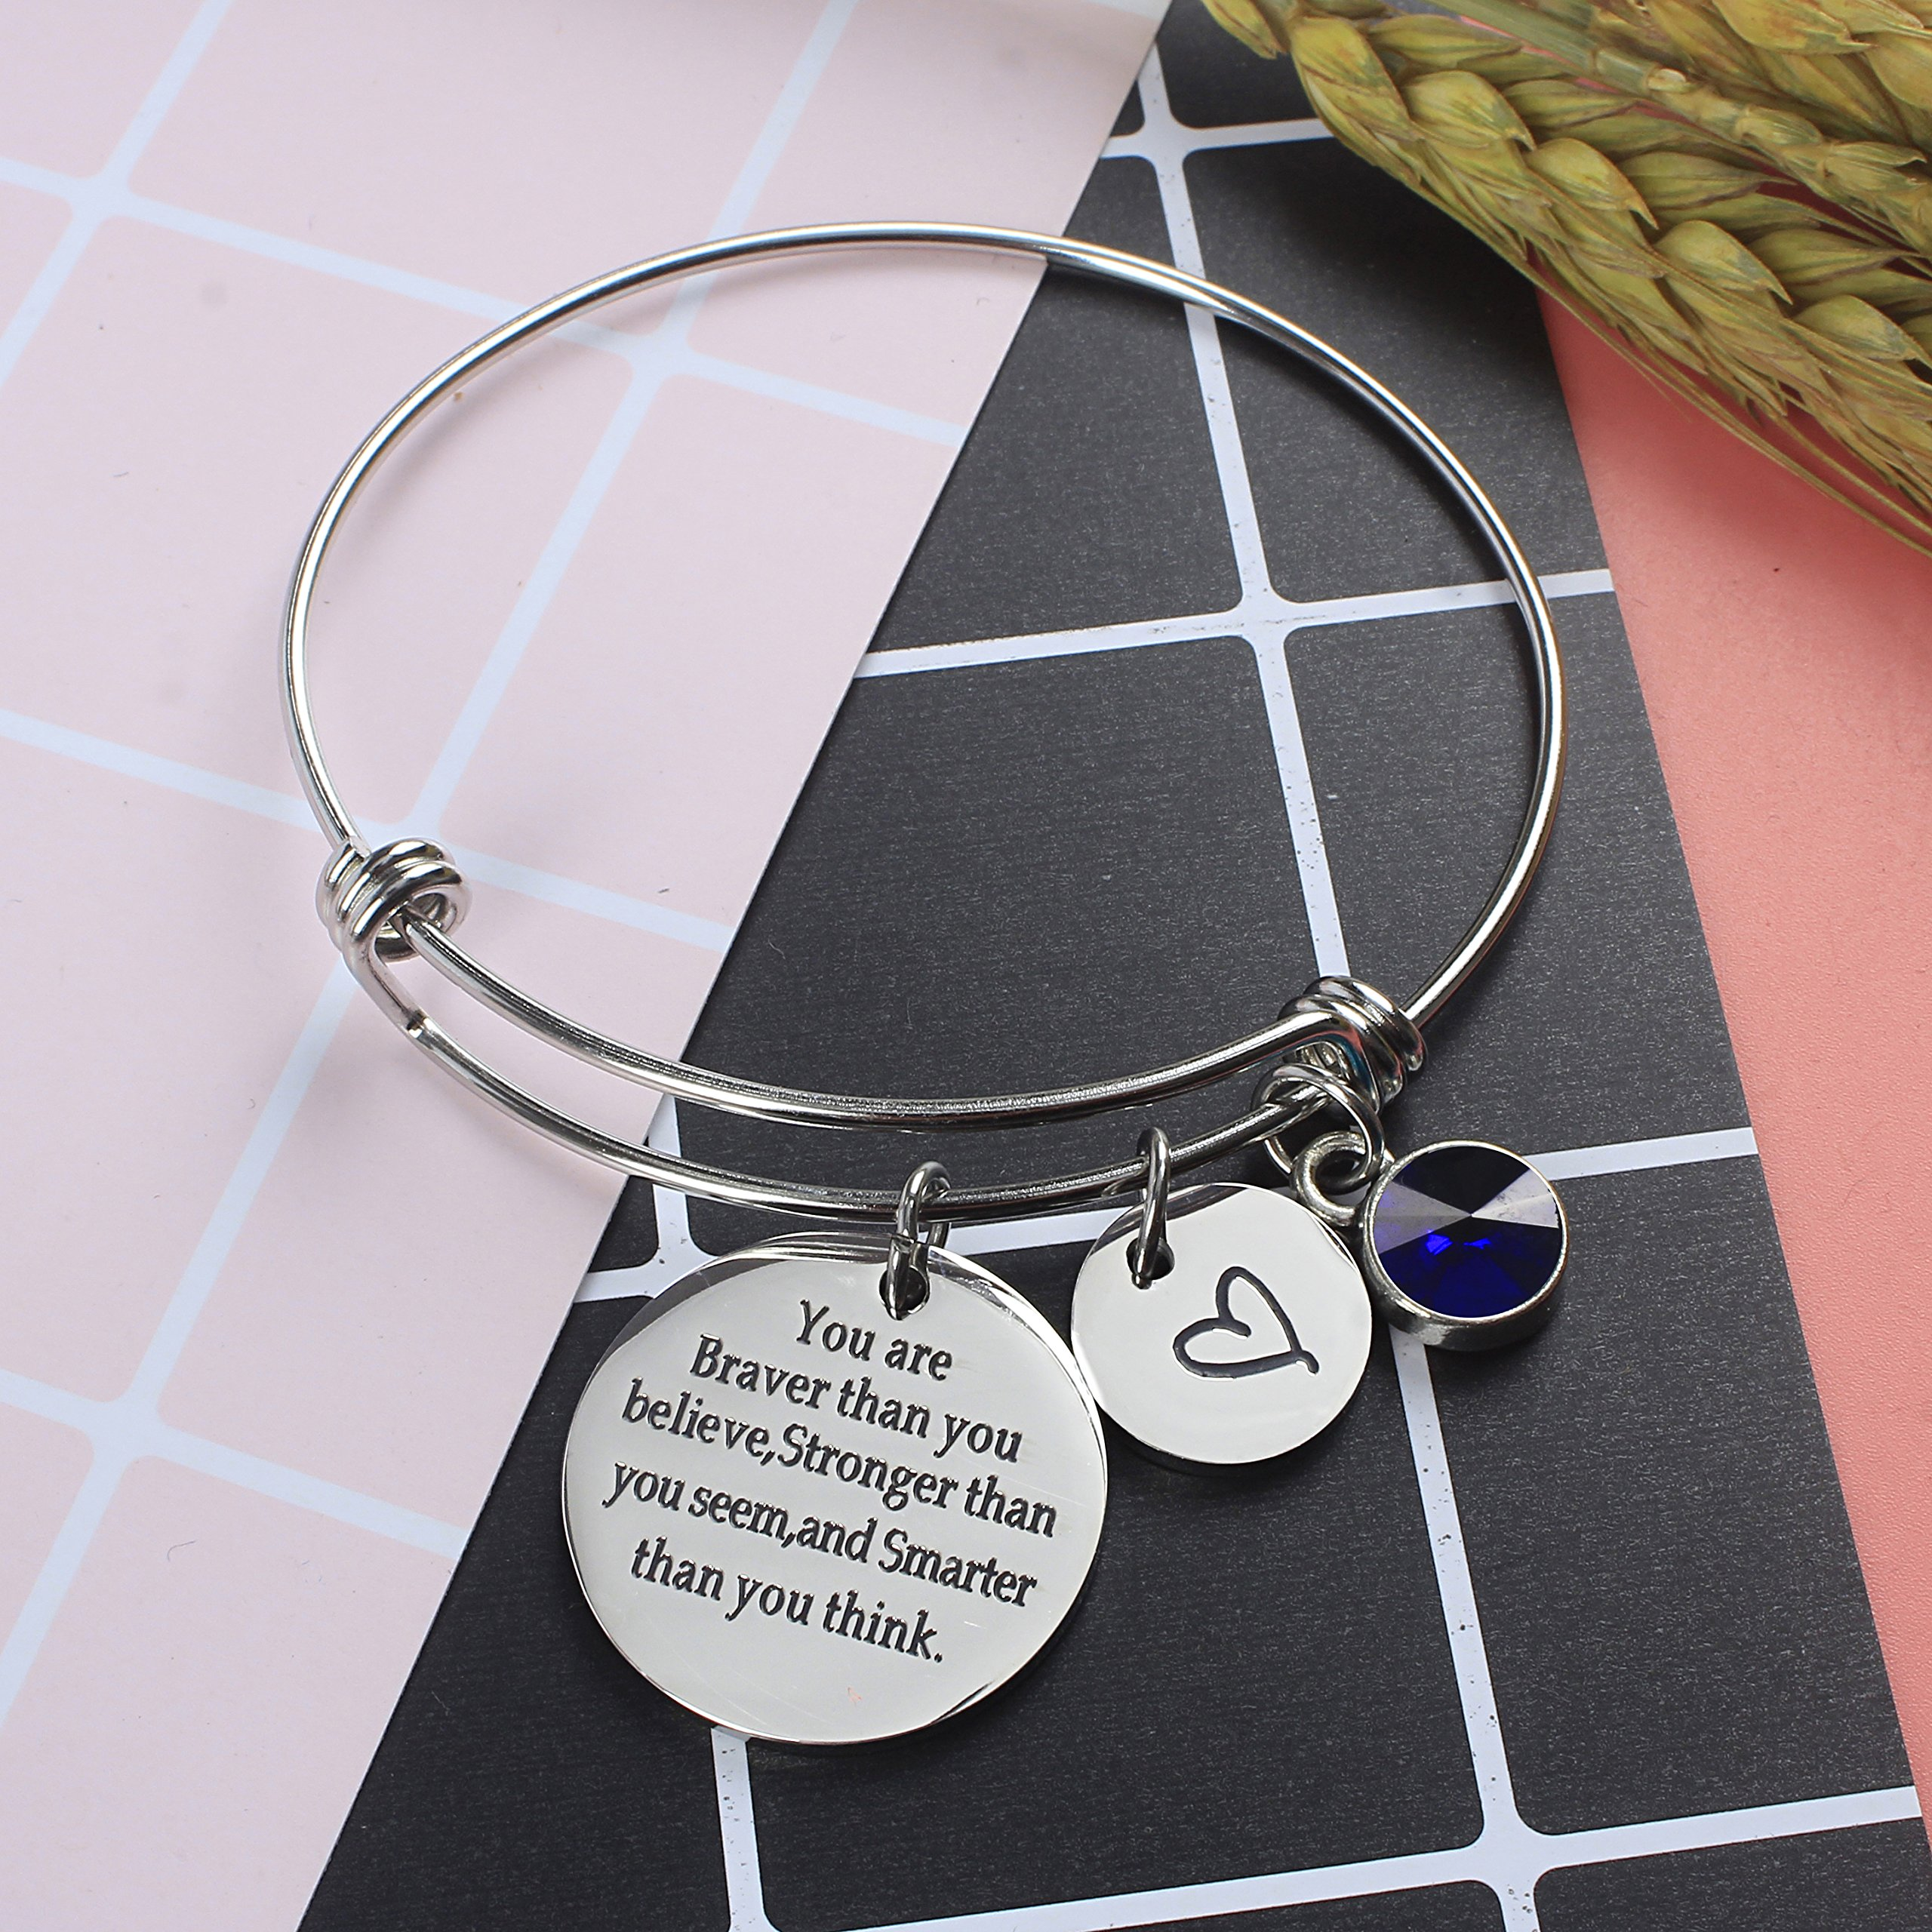 Angel's Draw Home You Are Braver than You Believe Adjustable Bangle Bracelets With 12 Months Color Birthstone for Women Girls Gift (Sapphire- September) by Angel's Draw Home (Image #5)